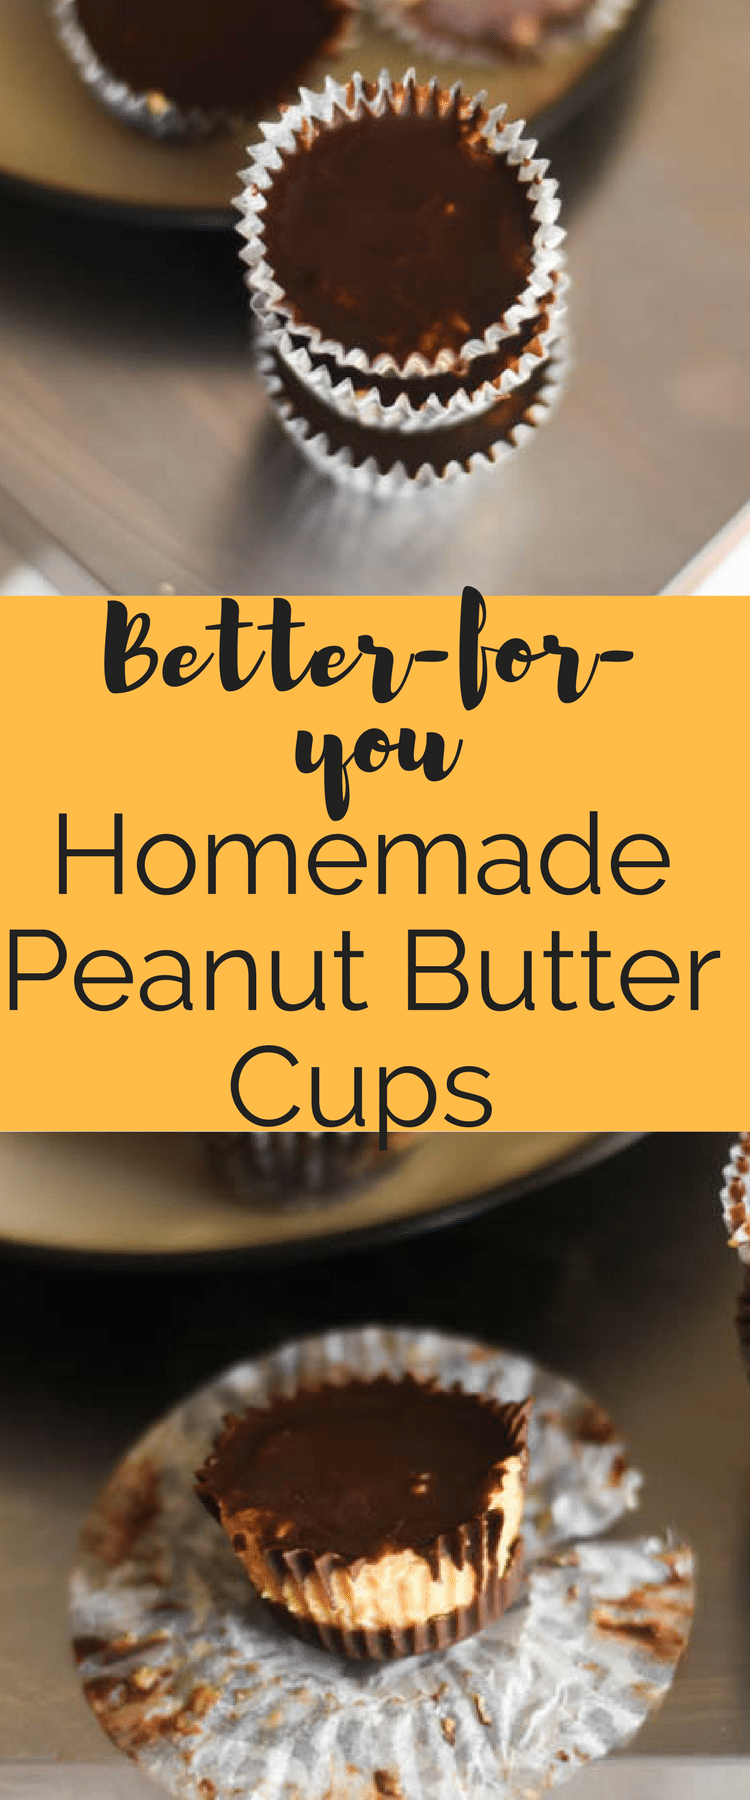 Homemade Peanut Butter Cups / Healthy Homemade Peanut Butter Cups / Protein Desserts / Gluten Free Desserts / Peanut Butter Cups Recipe / Peanut Butter Desserts / Dark Chocolate